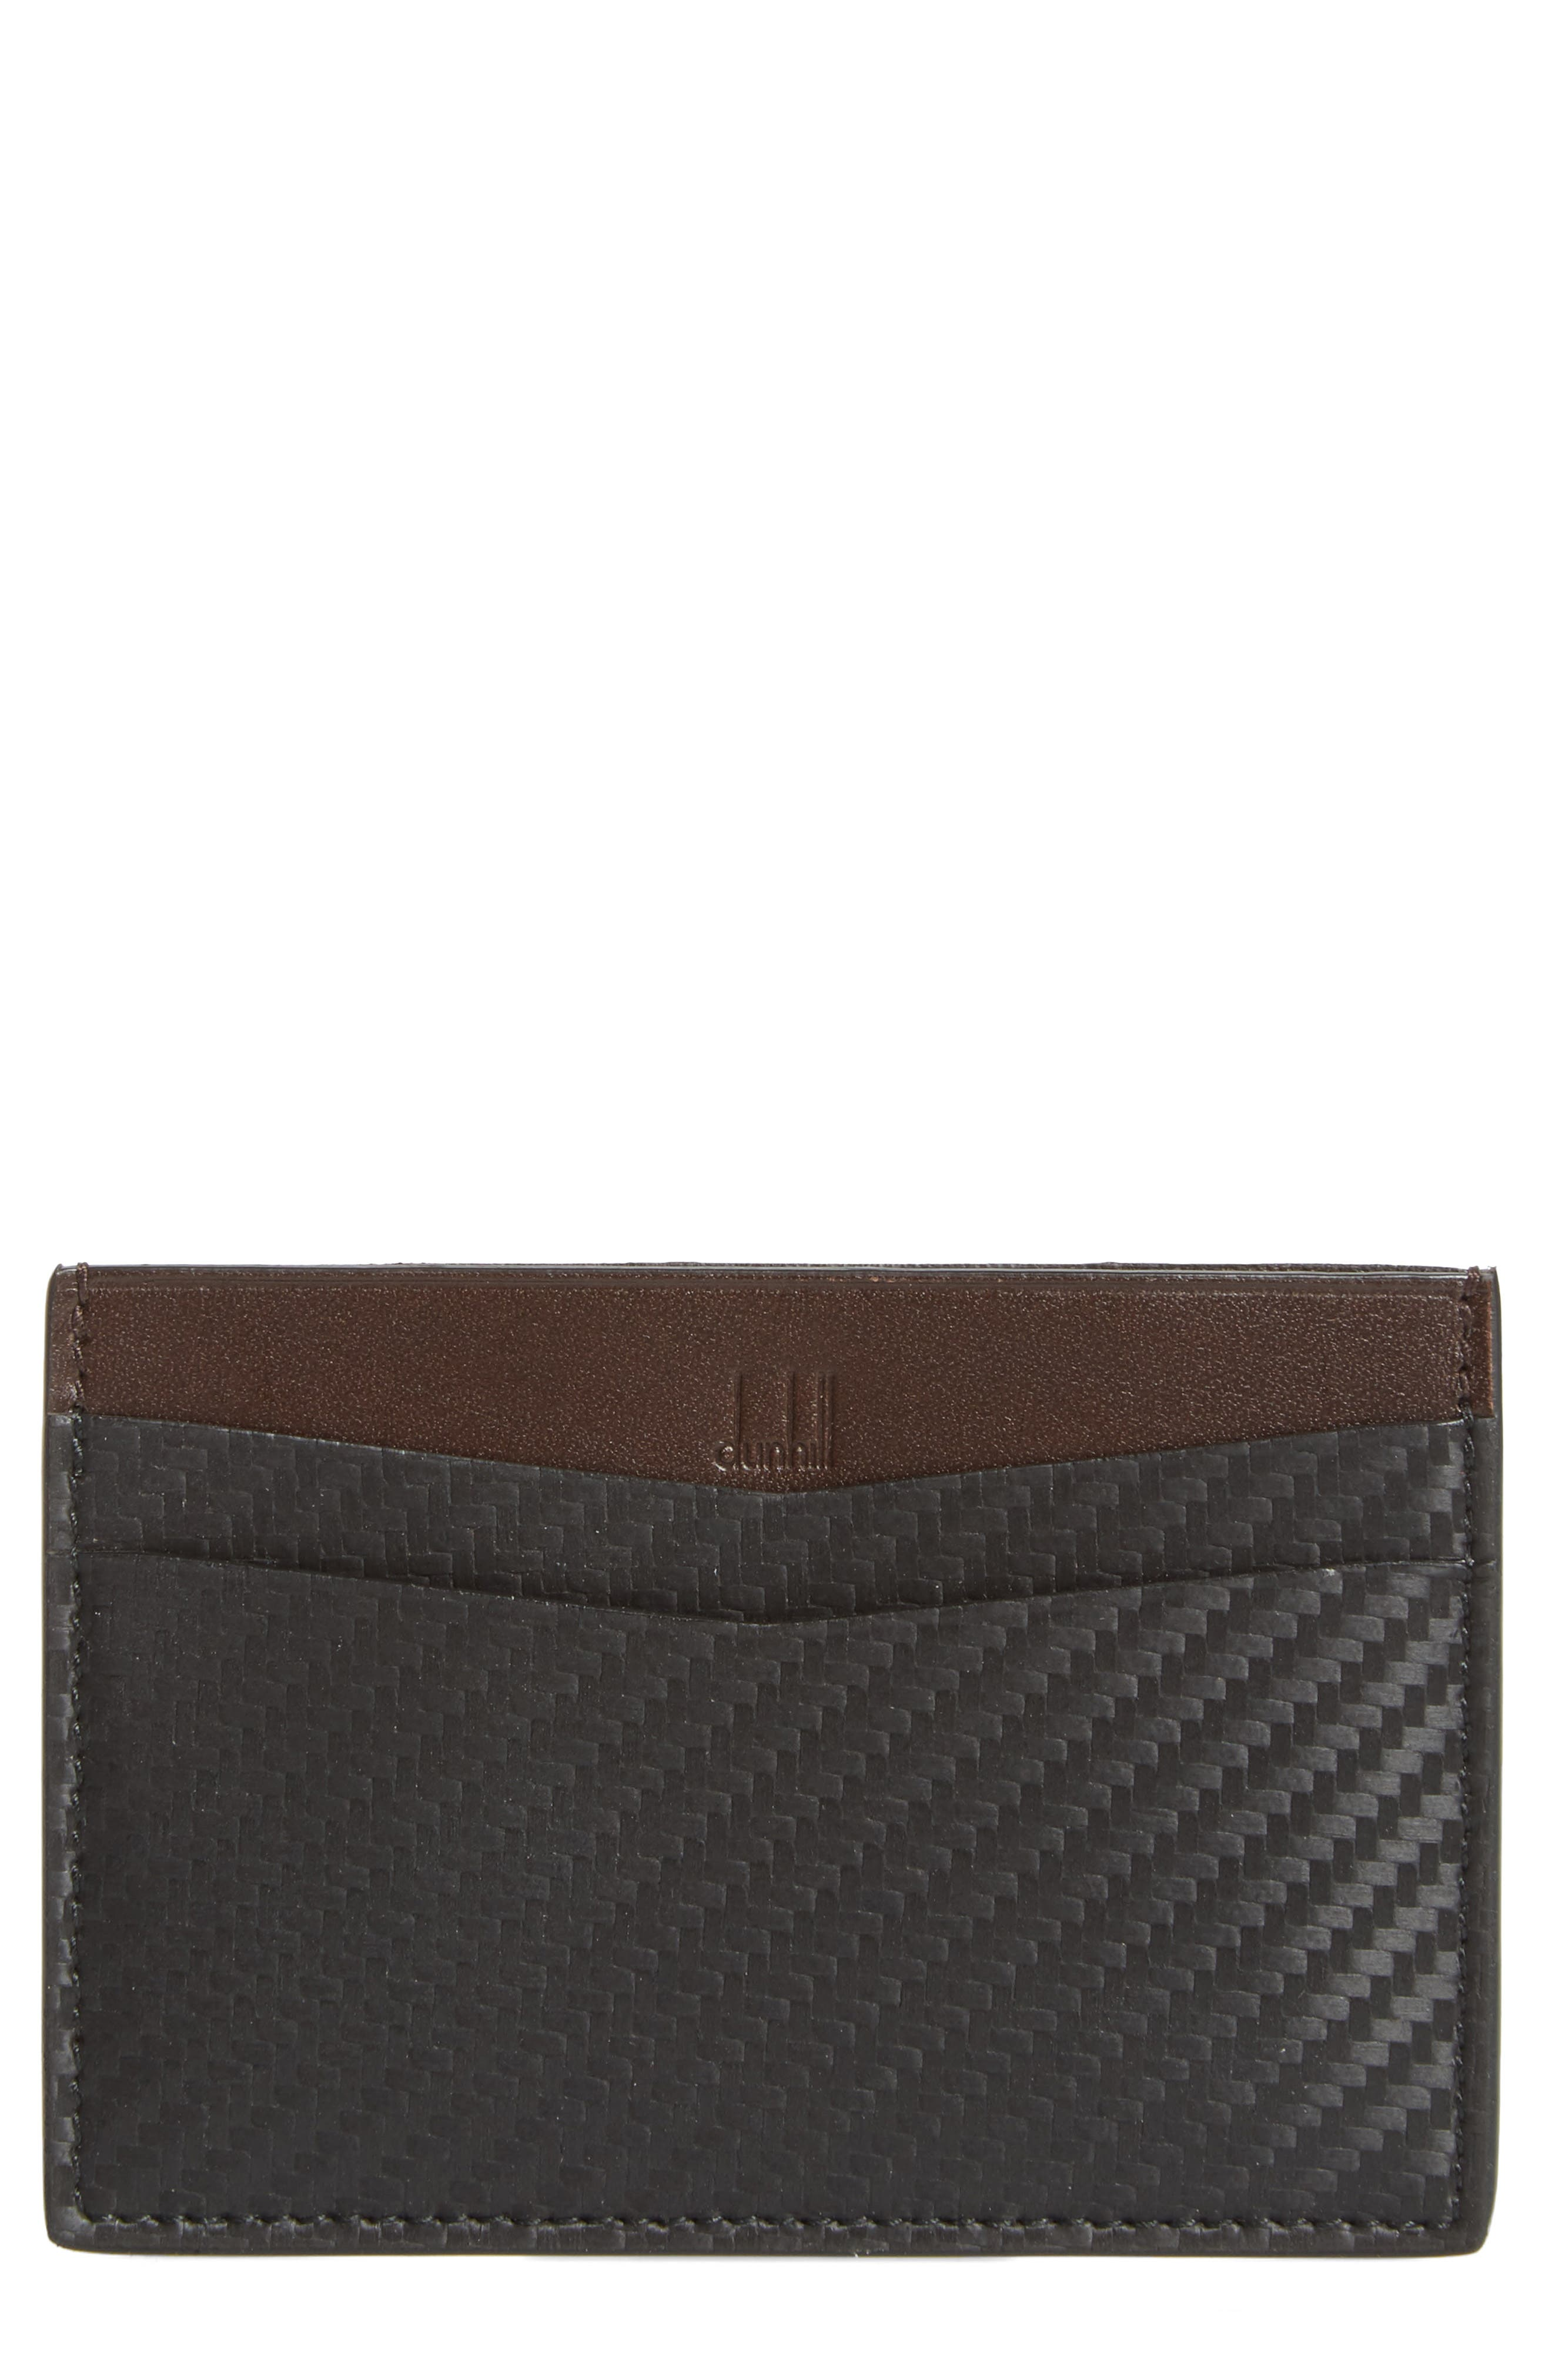 Chassis Leather Card Case,                             Main thumbnail 1, color,